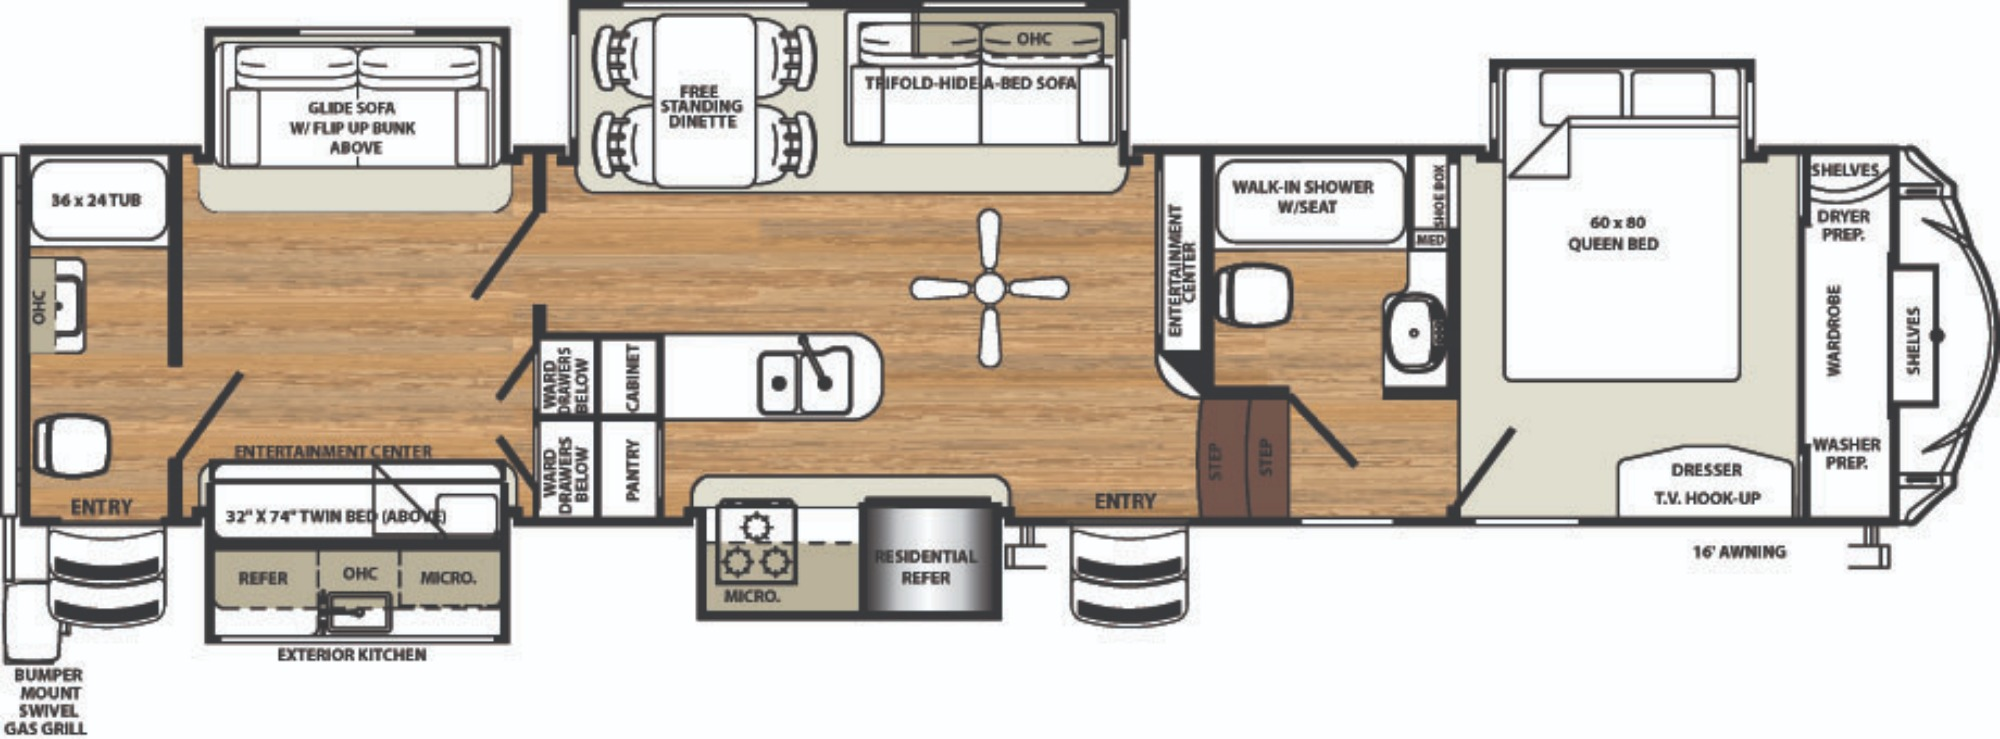 View Floor Plan for 2019 FOREST RIVER SIERRA 381RBOK